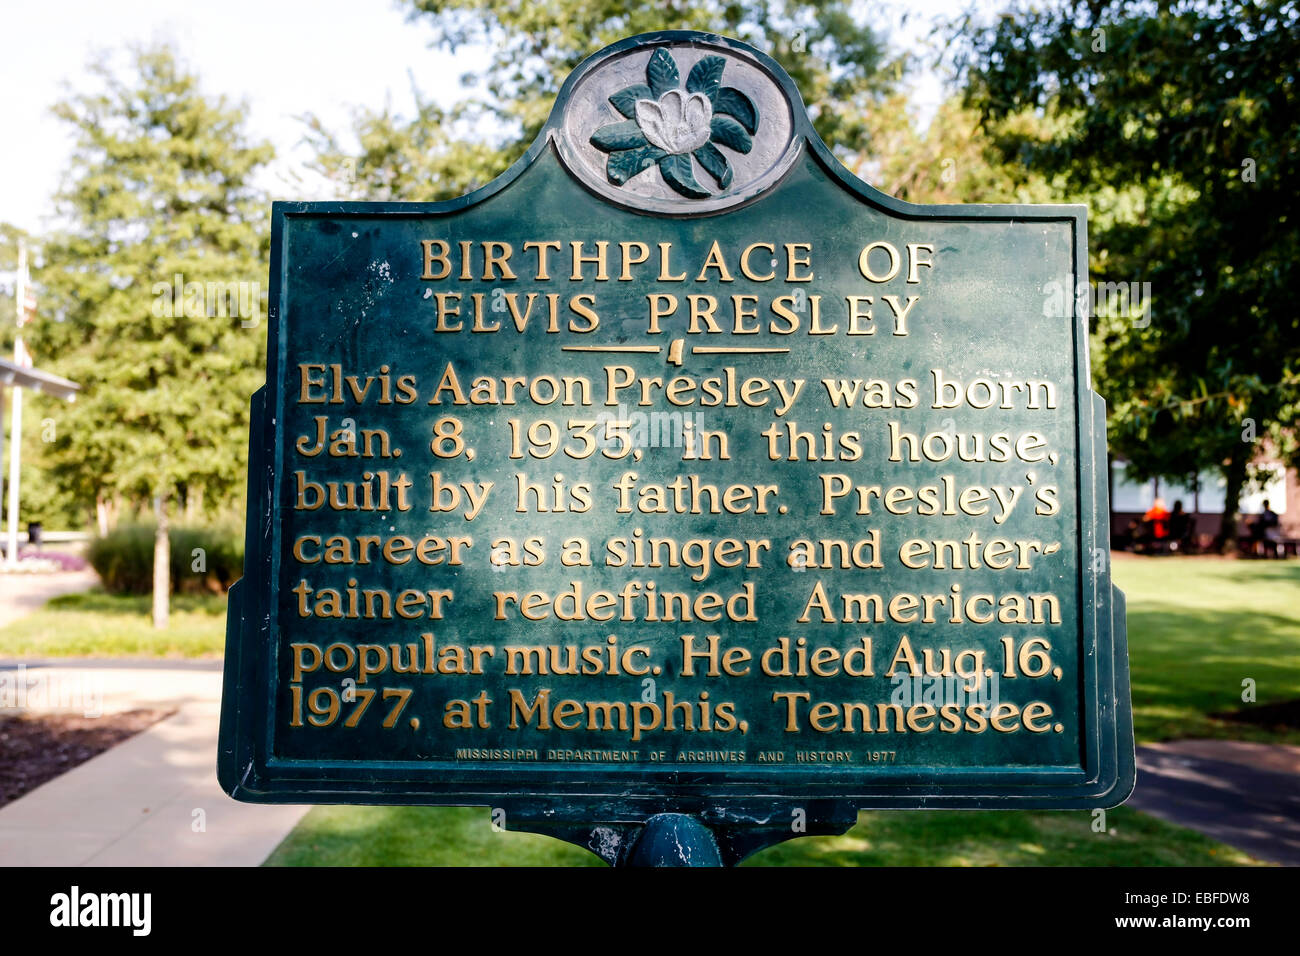 Birthplace of Elvis Presley National Historic Plaque in Tupelo MS - Stock Image